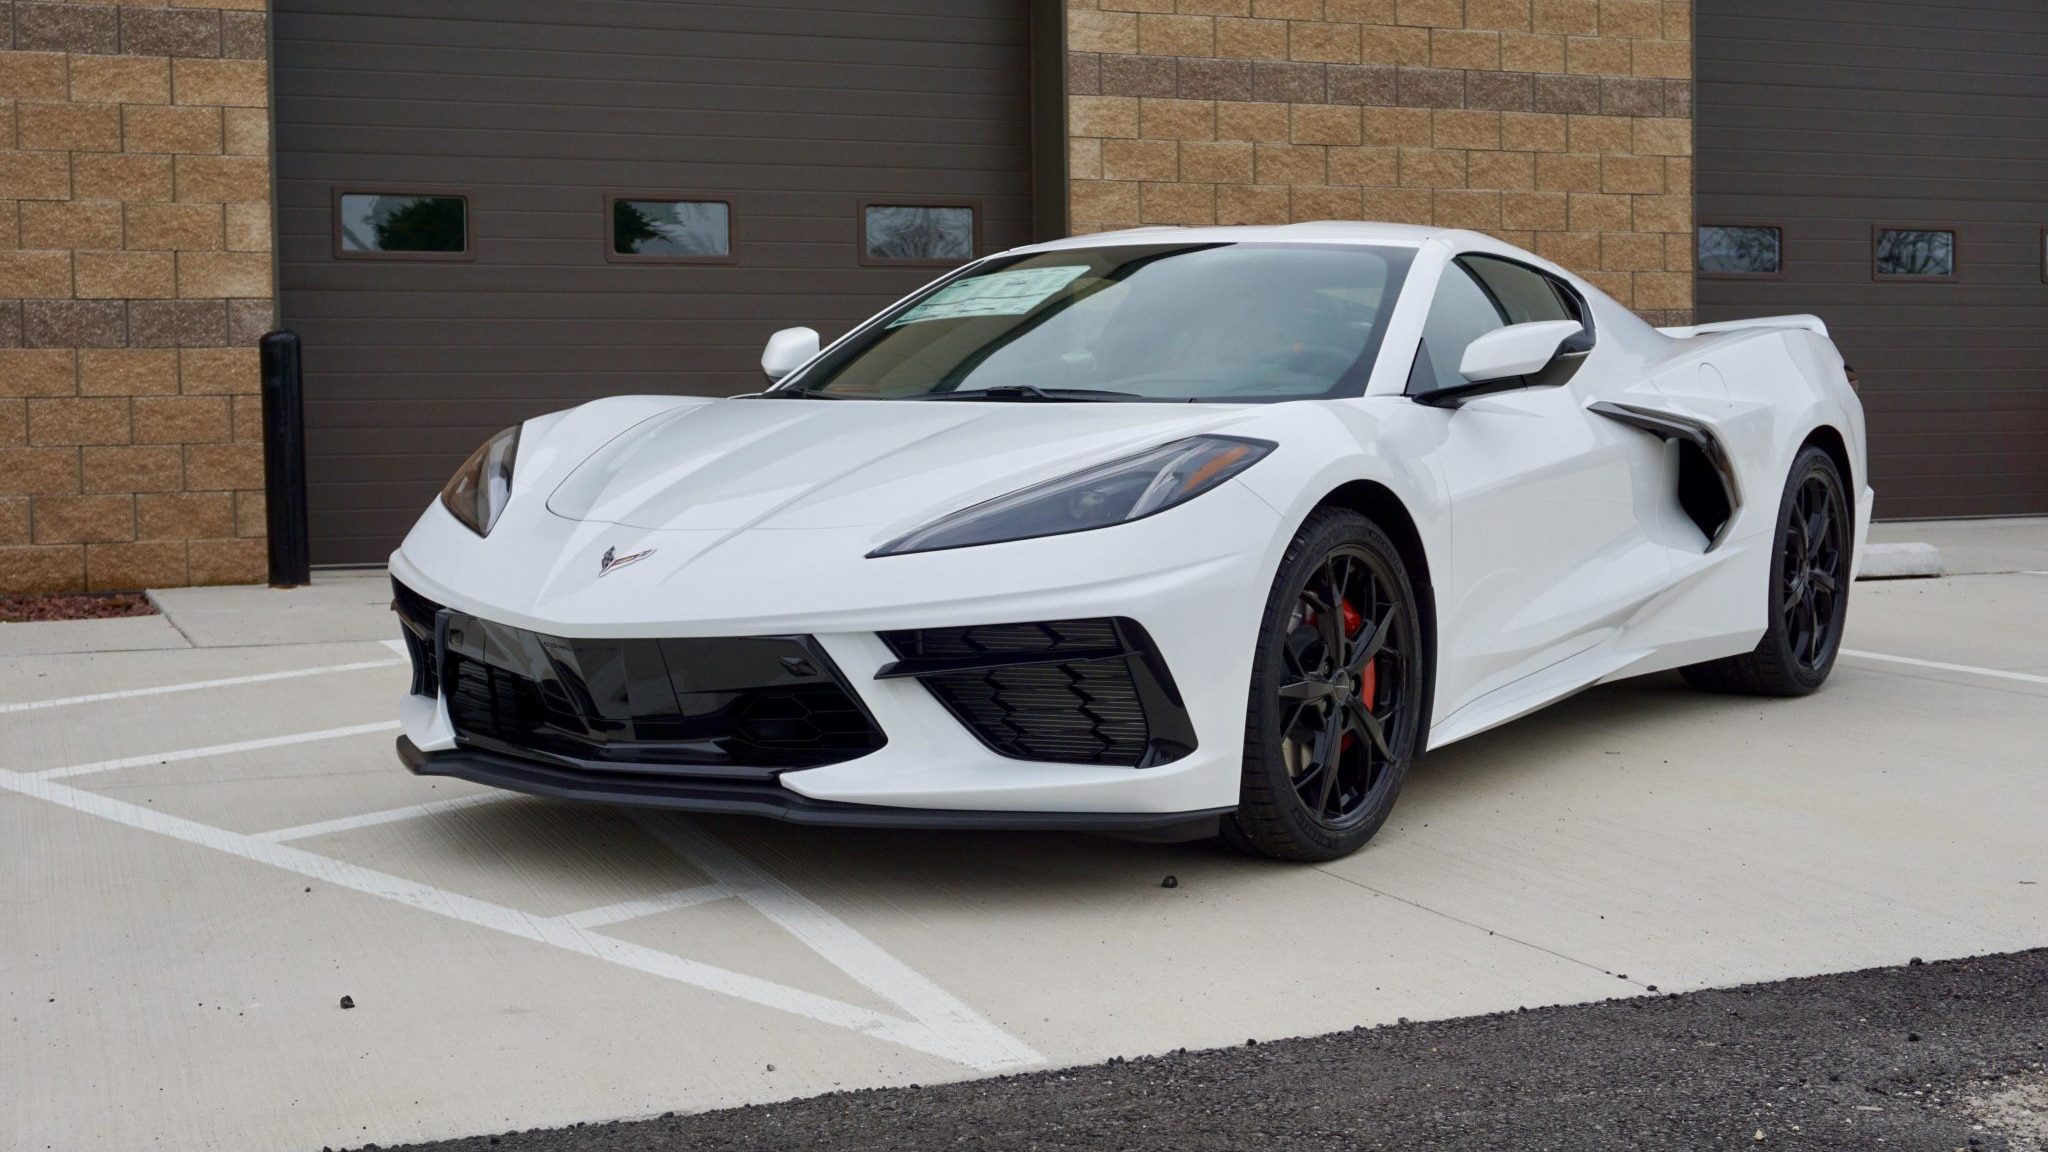 2020 Chevy C8 Corvette Z51 Sells For 12 000 More Than Msrp On Bring A Trailer